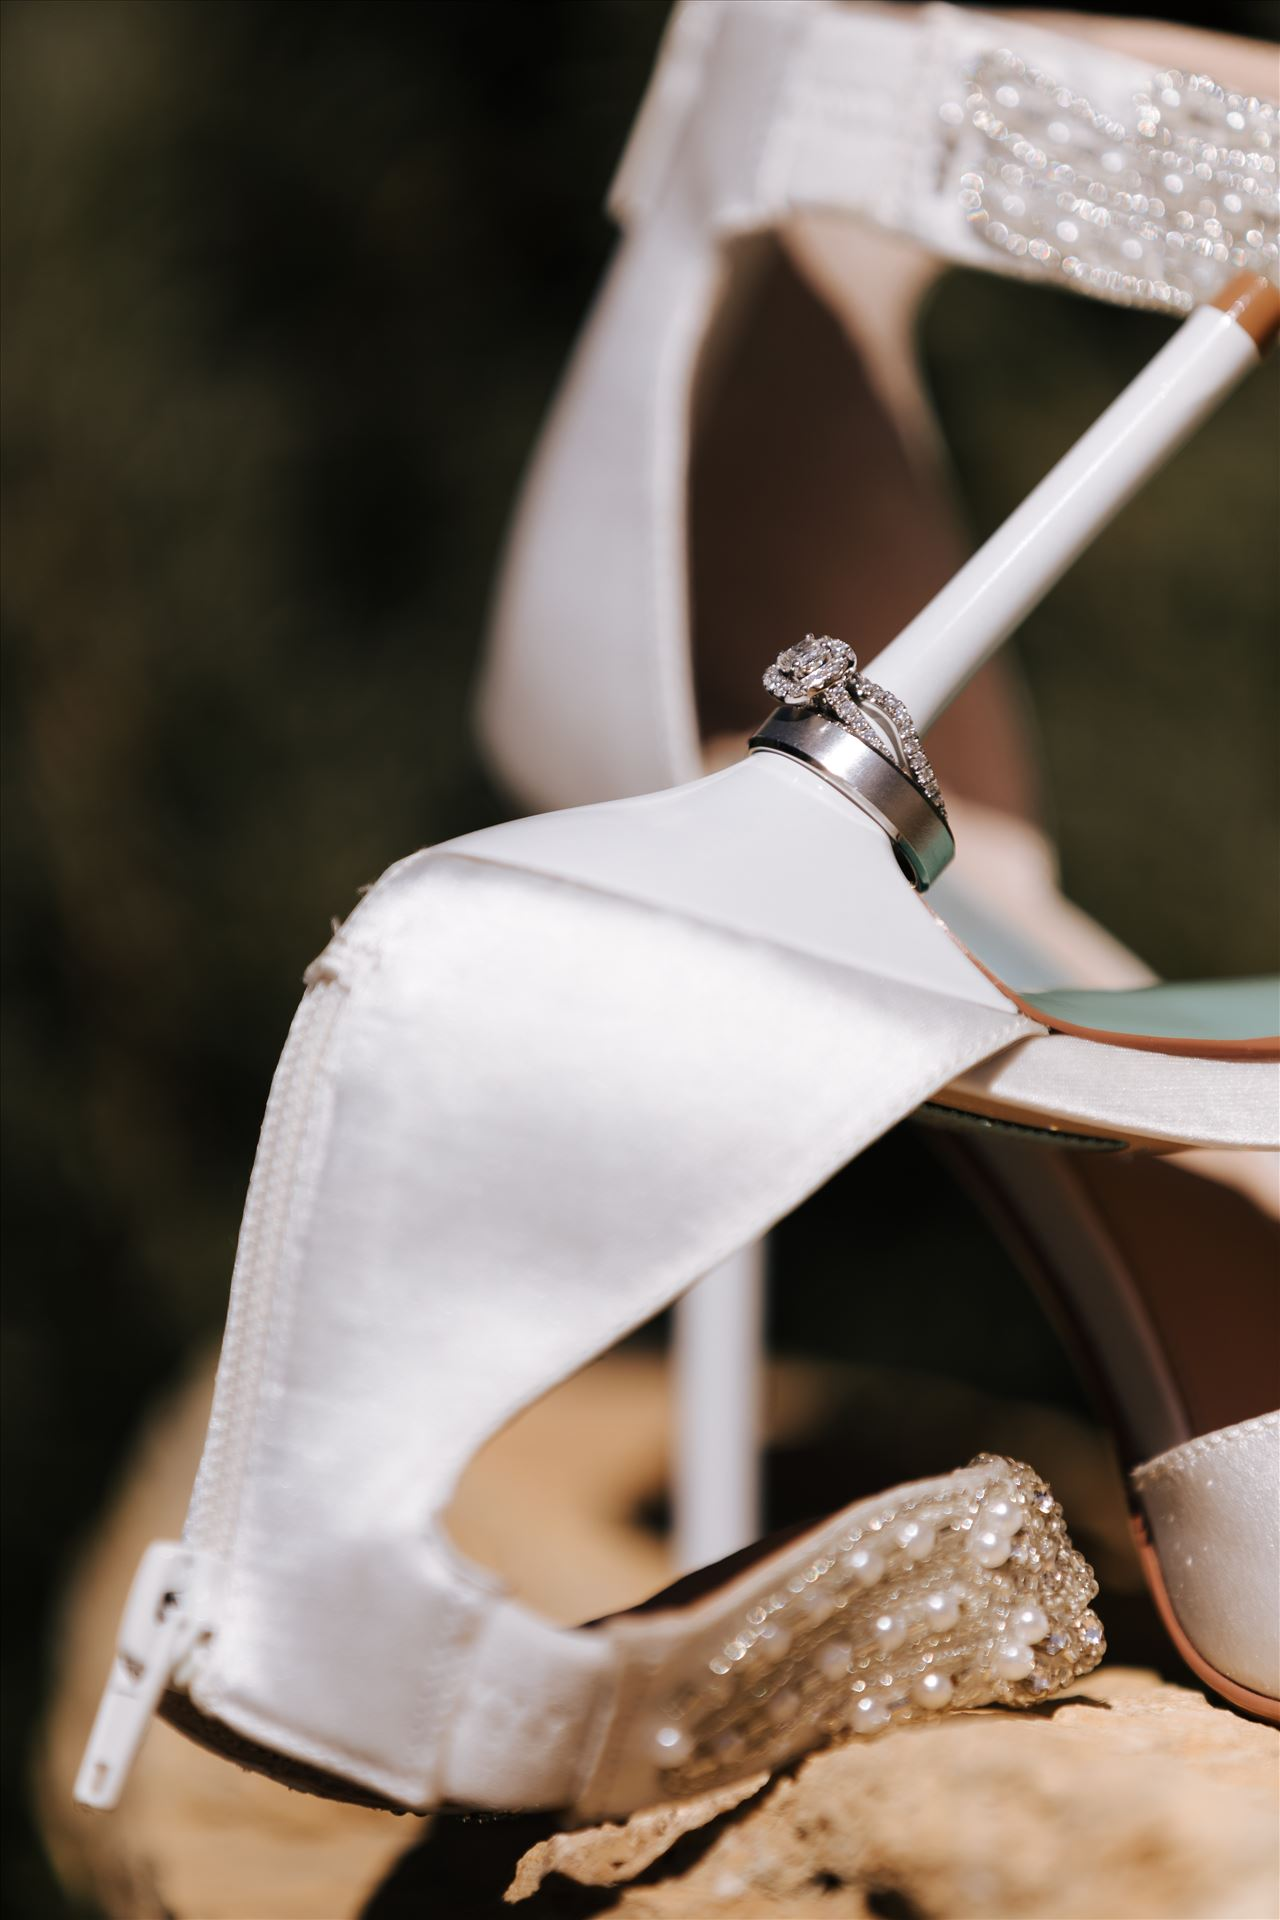 _Y9A6433.JPG - Tooth and Nail Winery elegant and formal wedding in Paso Robles California wine country by Mirror's Edge Photography, San Luis Obispo County Wedding Photographer. Bridal shoes and wedding rings by Sarah Williams